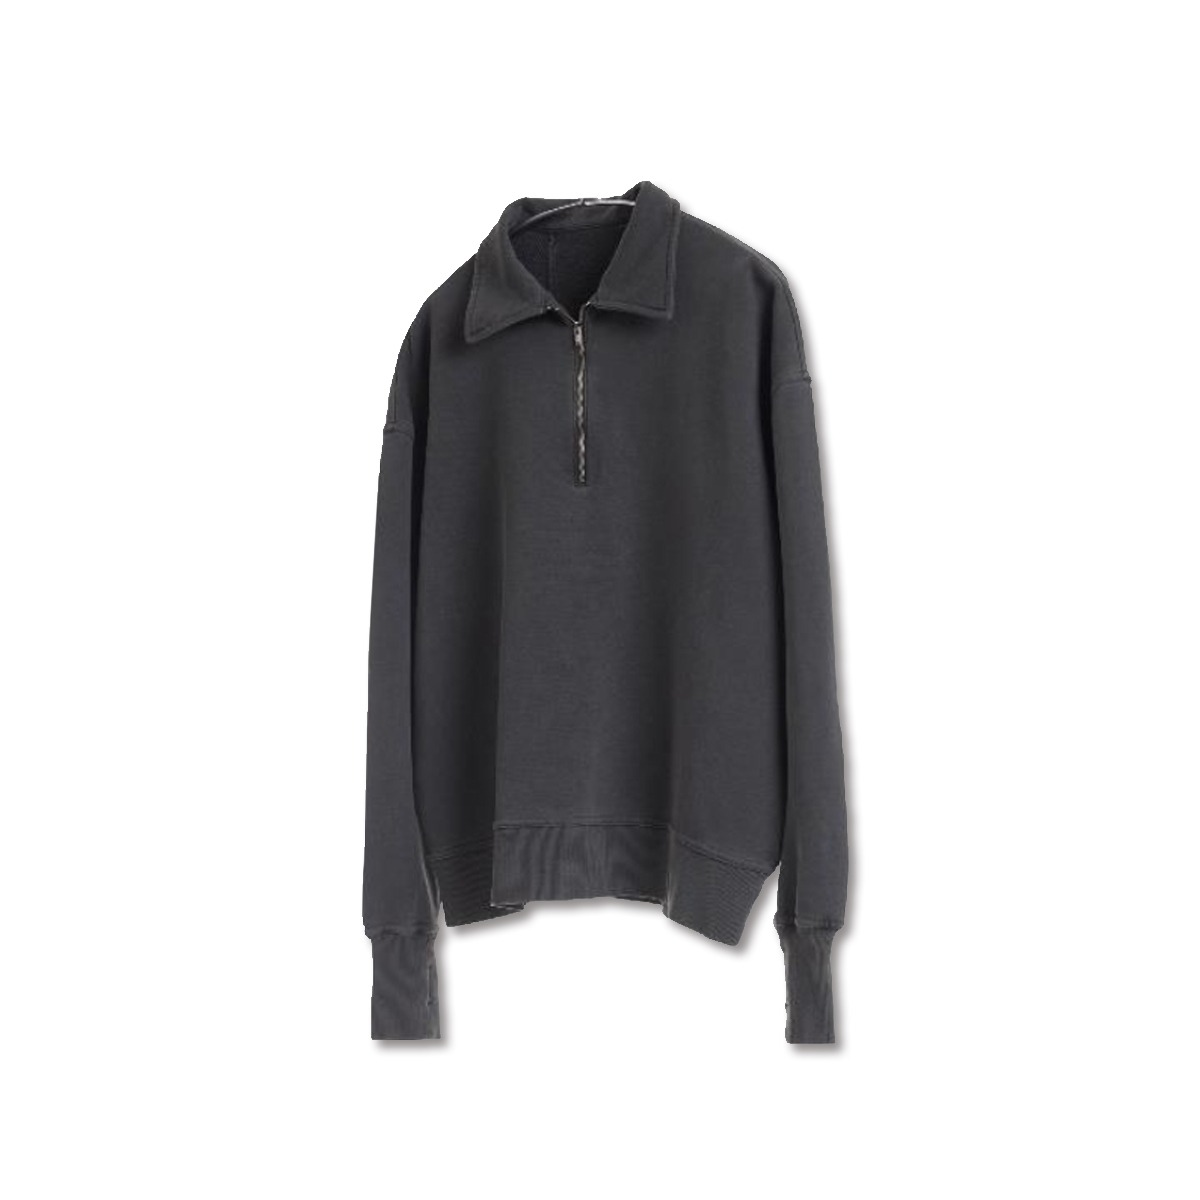 [YOUTH] DYED COLLAR SWEATSHIRT 'BLACK'